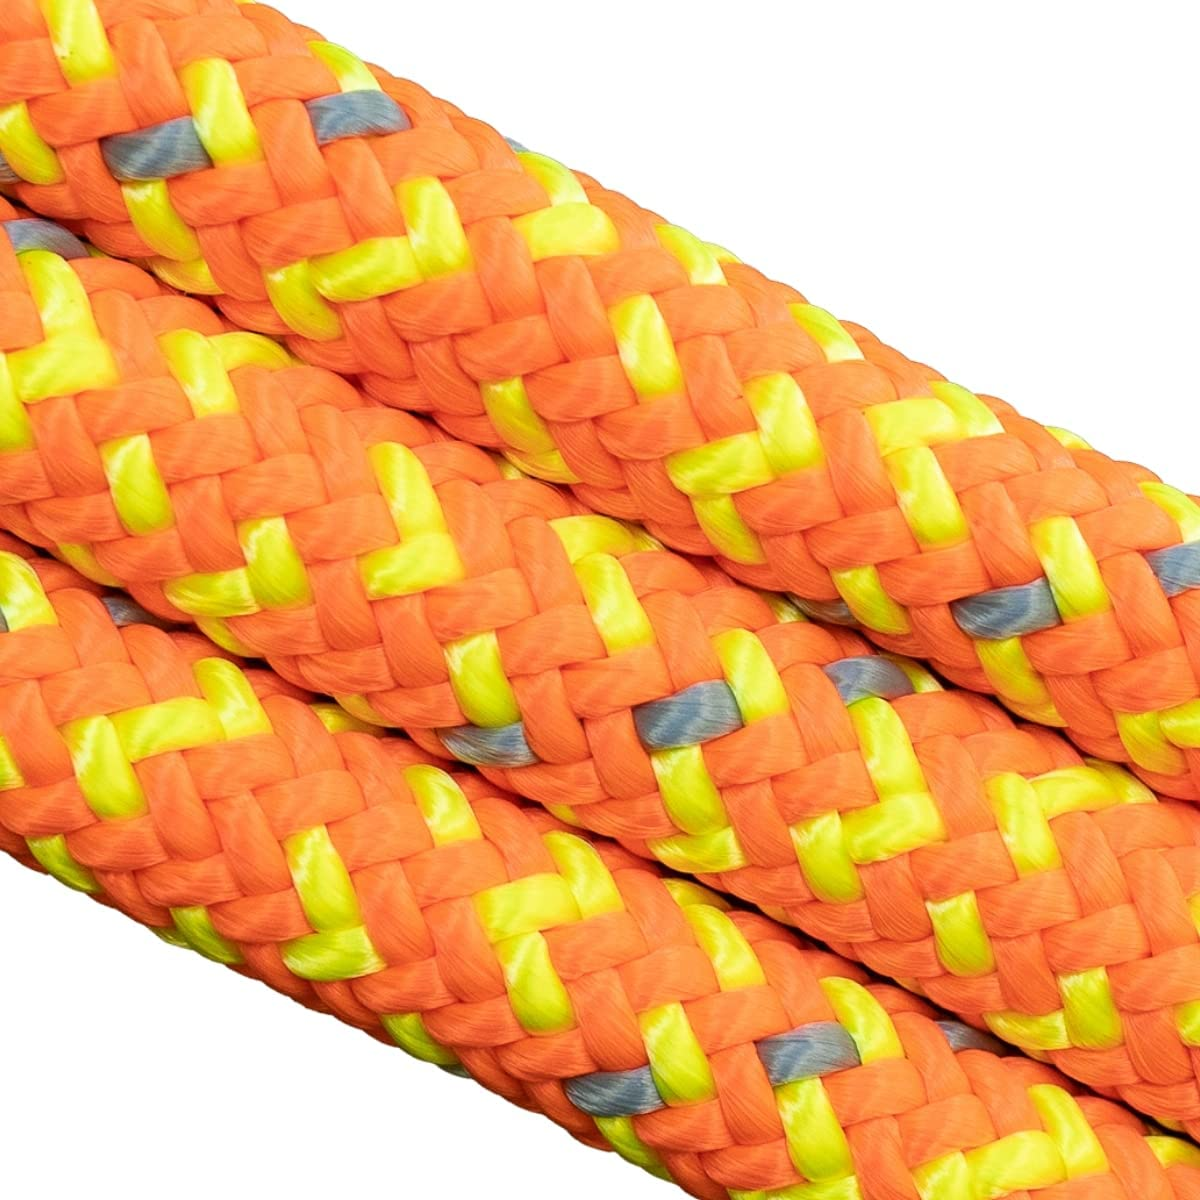 Arborist Tree Climbing Rope 24 Strand low-pricing Many popular brands All 1 2 mm inch 12.7